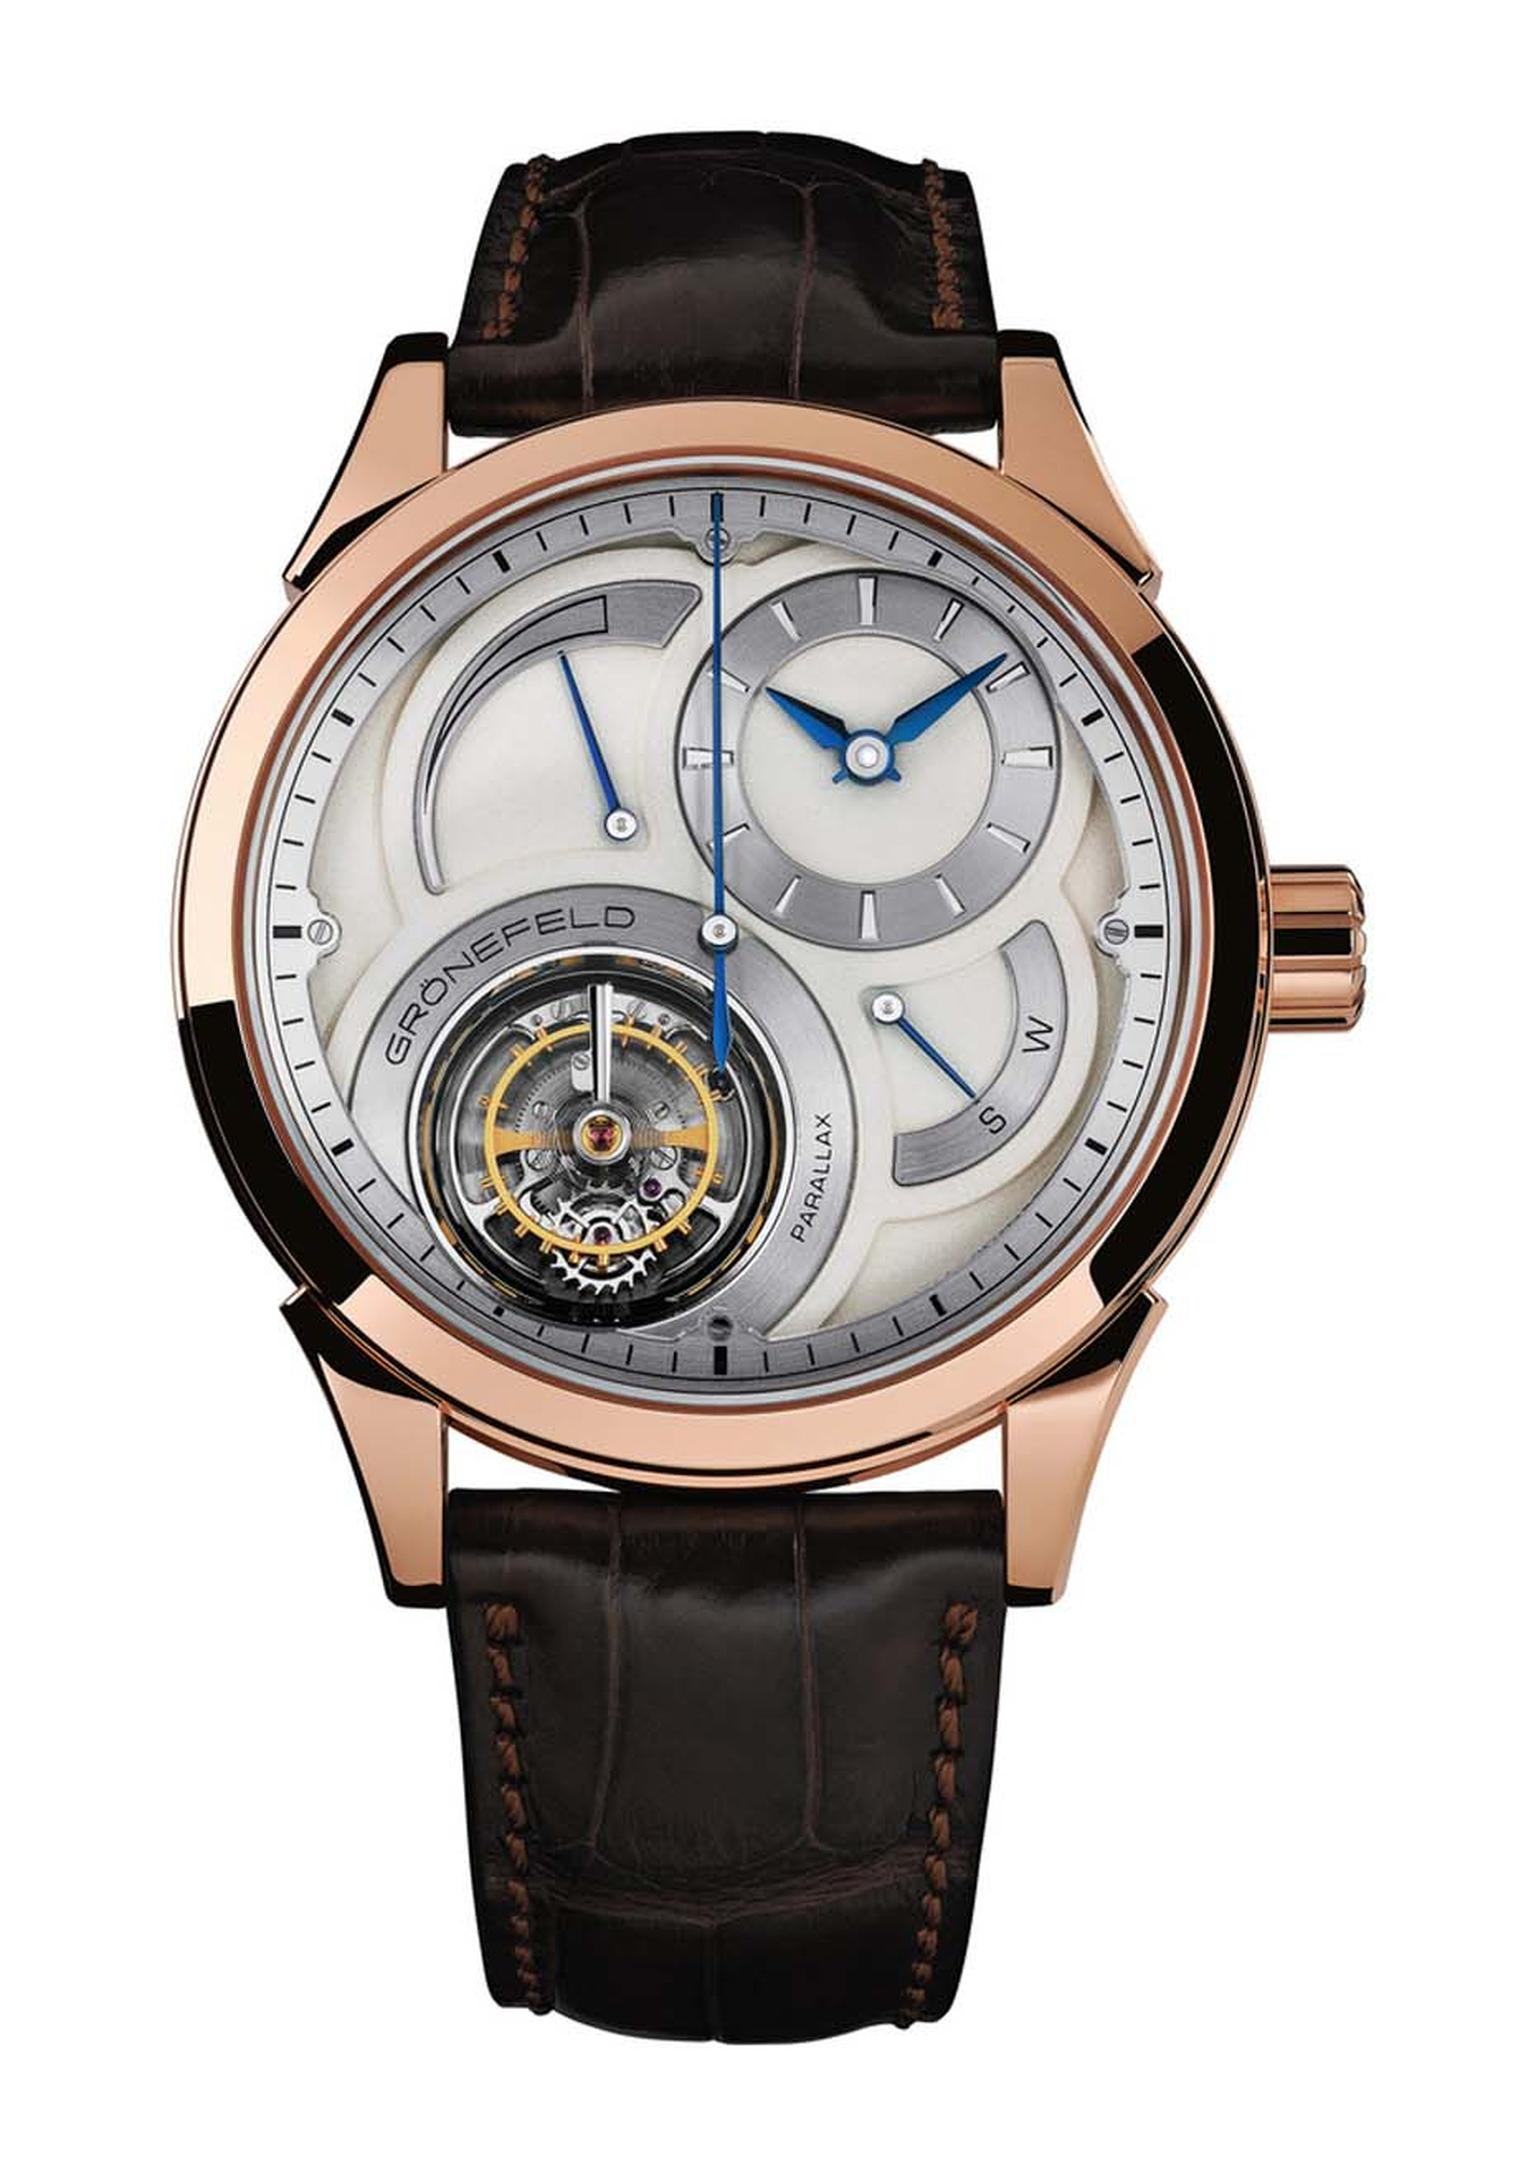 Grönefeld's Parallax Tourbillon watch took the Tourbillon Prize at the GPHG.